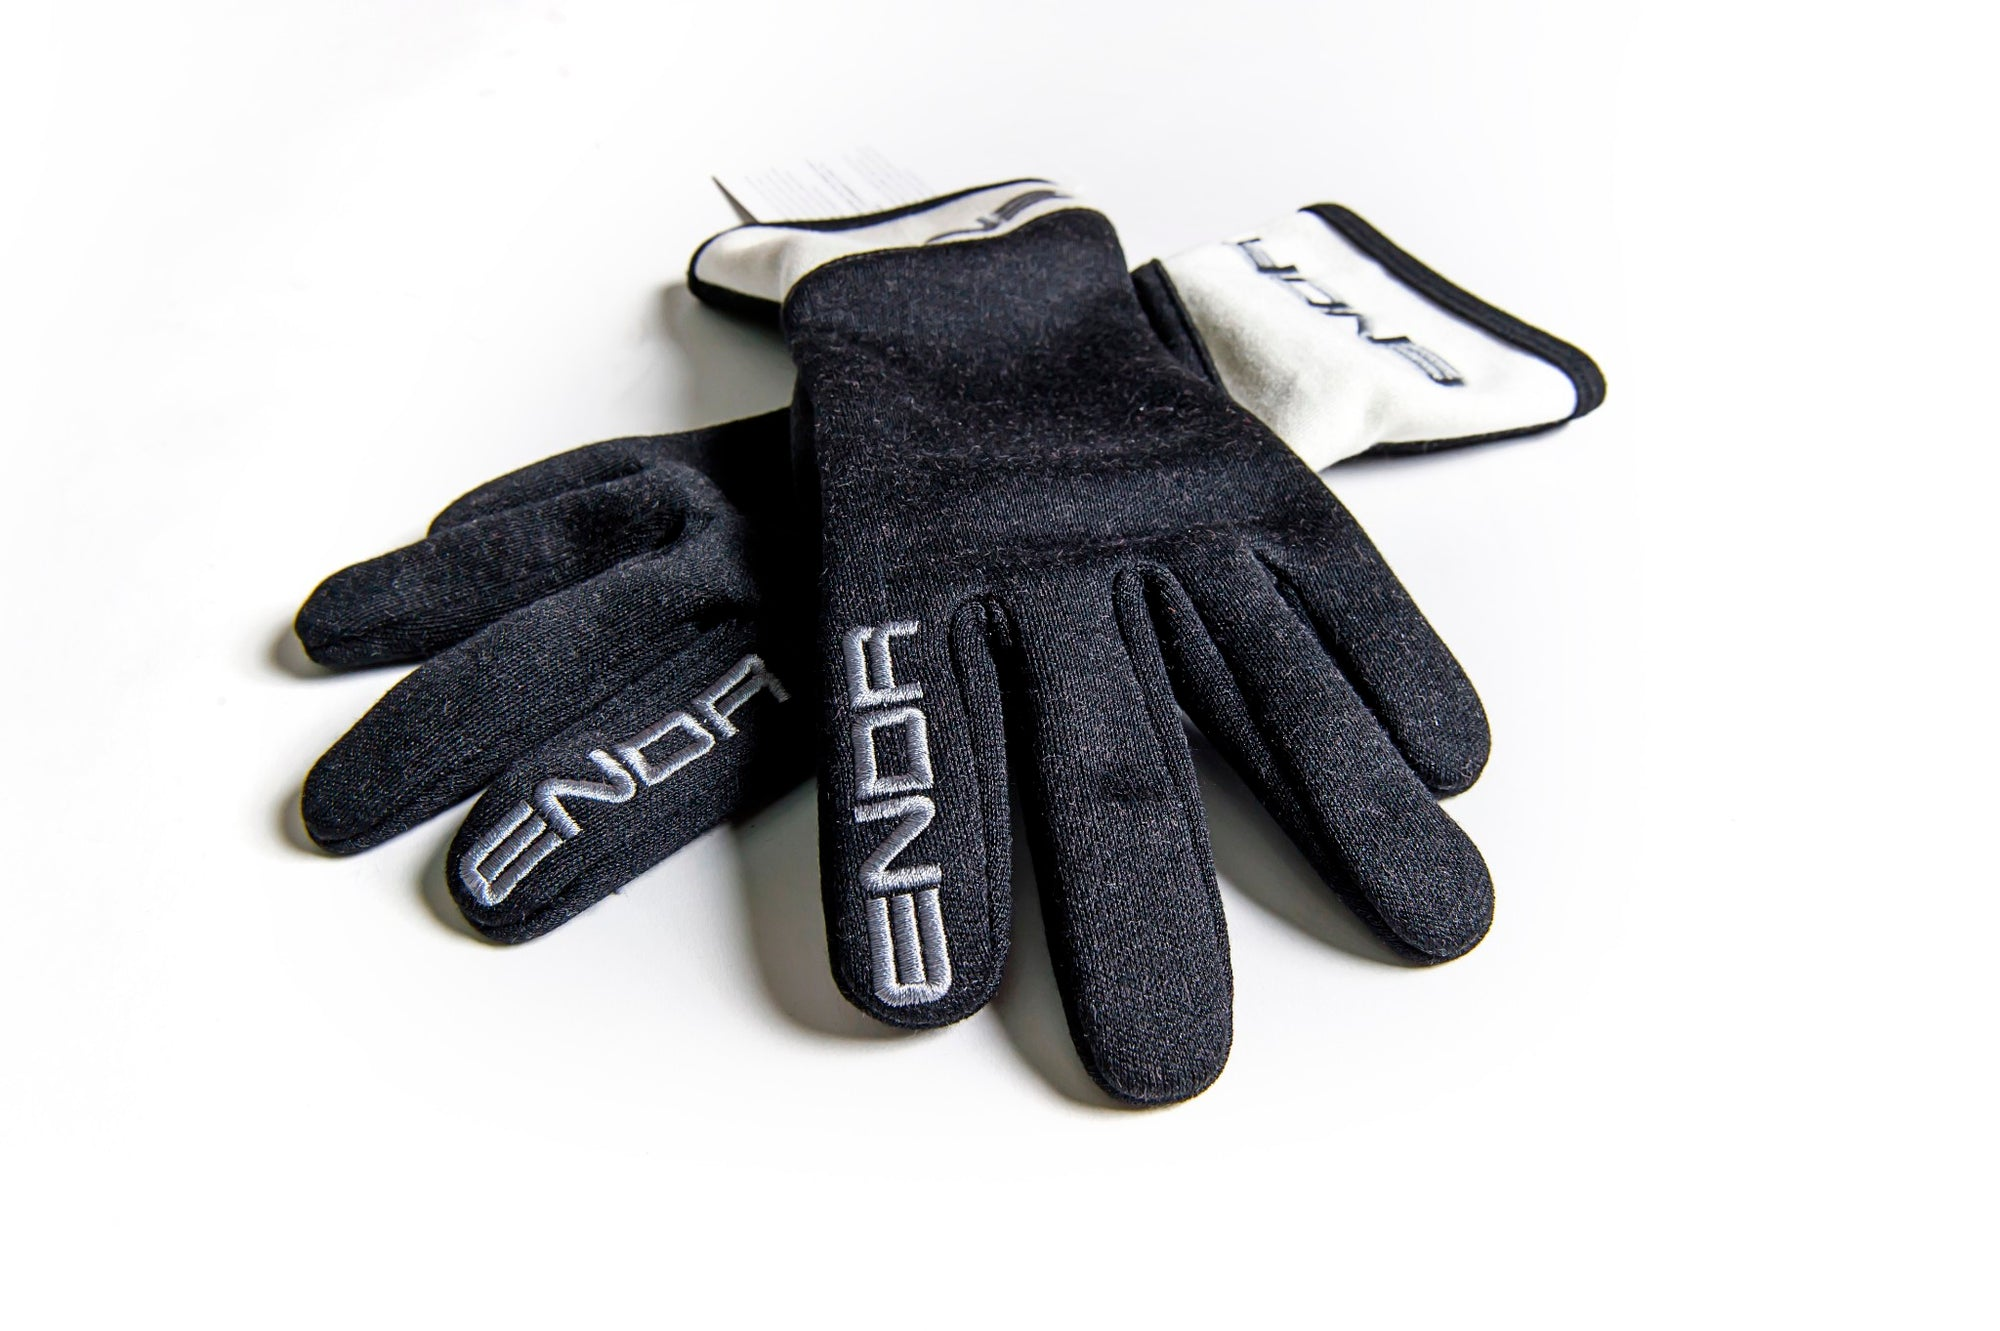 ENDR G1 FIA Racing Gloves (Inseam Stitching)